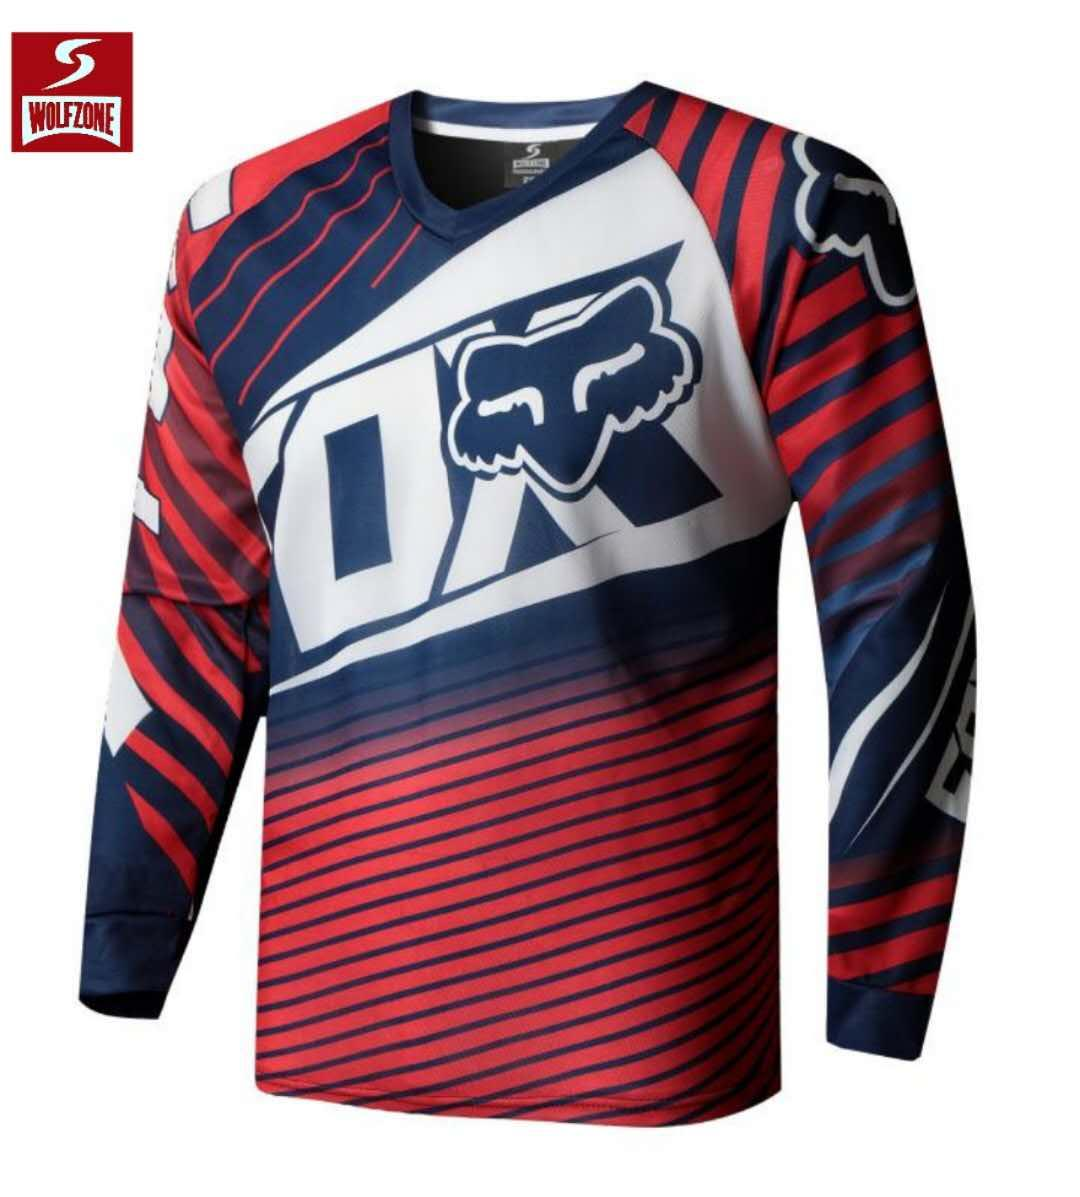 4bb09c1f9 Wolf Zone Spandex Fox Longsleeve Men s Sportswear Quick DryFortress Cycling  Mountain Bike Motocross Motorcycle MTB